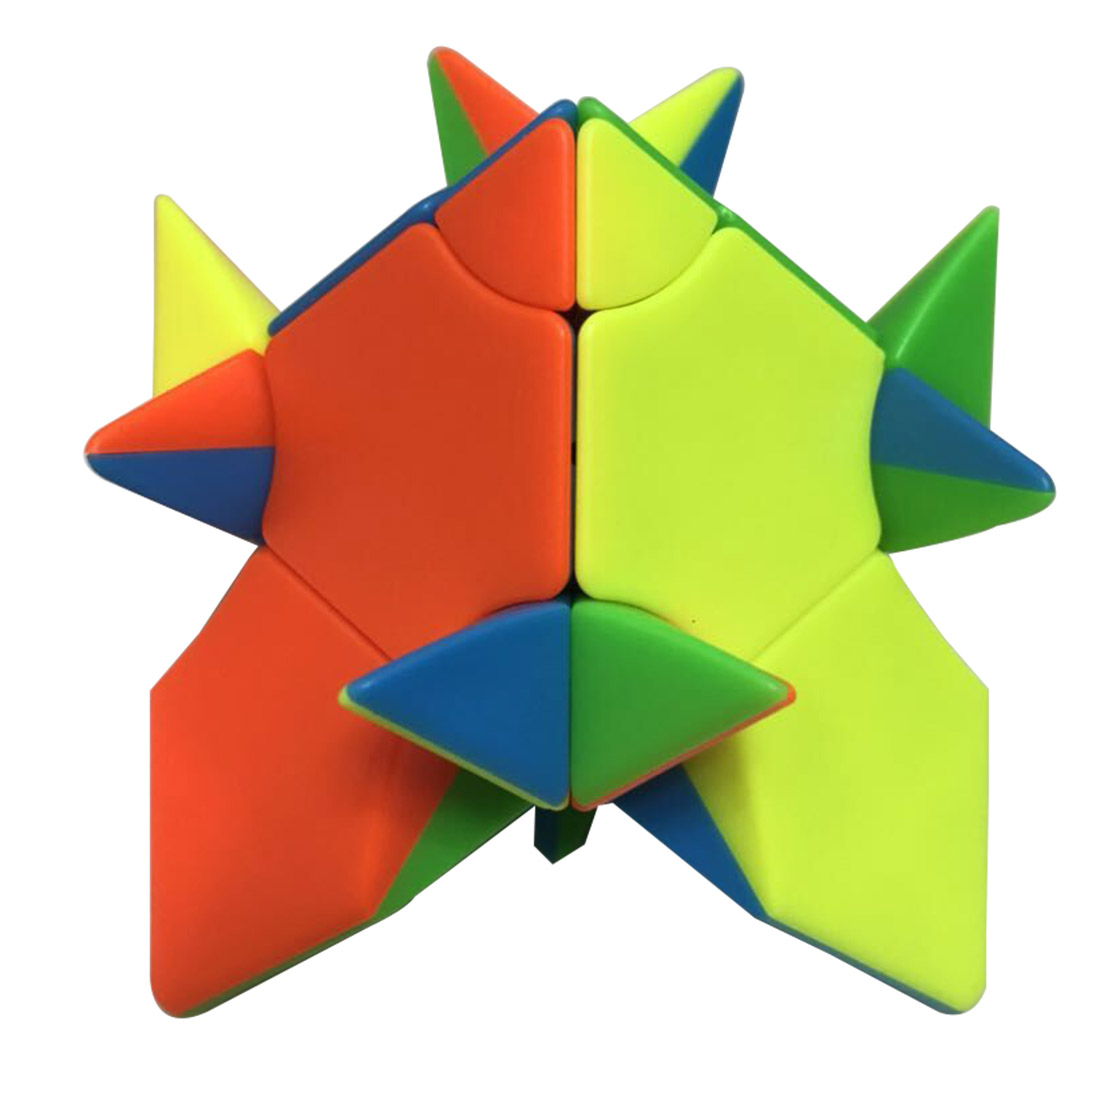 Fangshi Lim 2x2 Changeable Pyramid Octahedron Magic Cube Puzzle Toy - Colorful